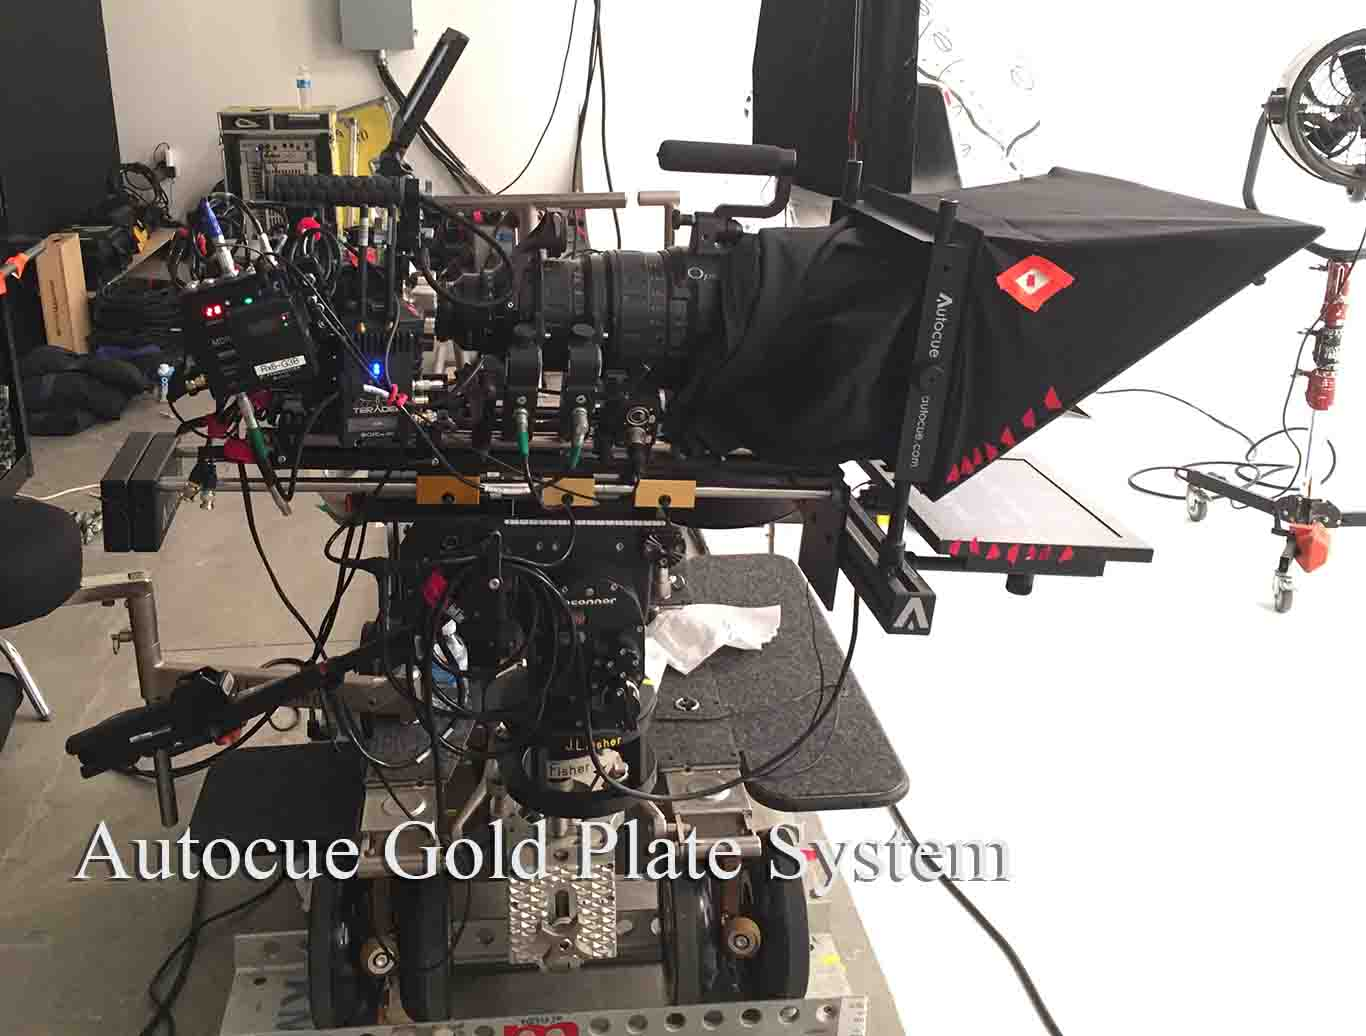 Autocue Gold Plate System